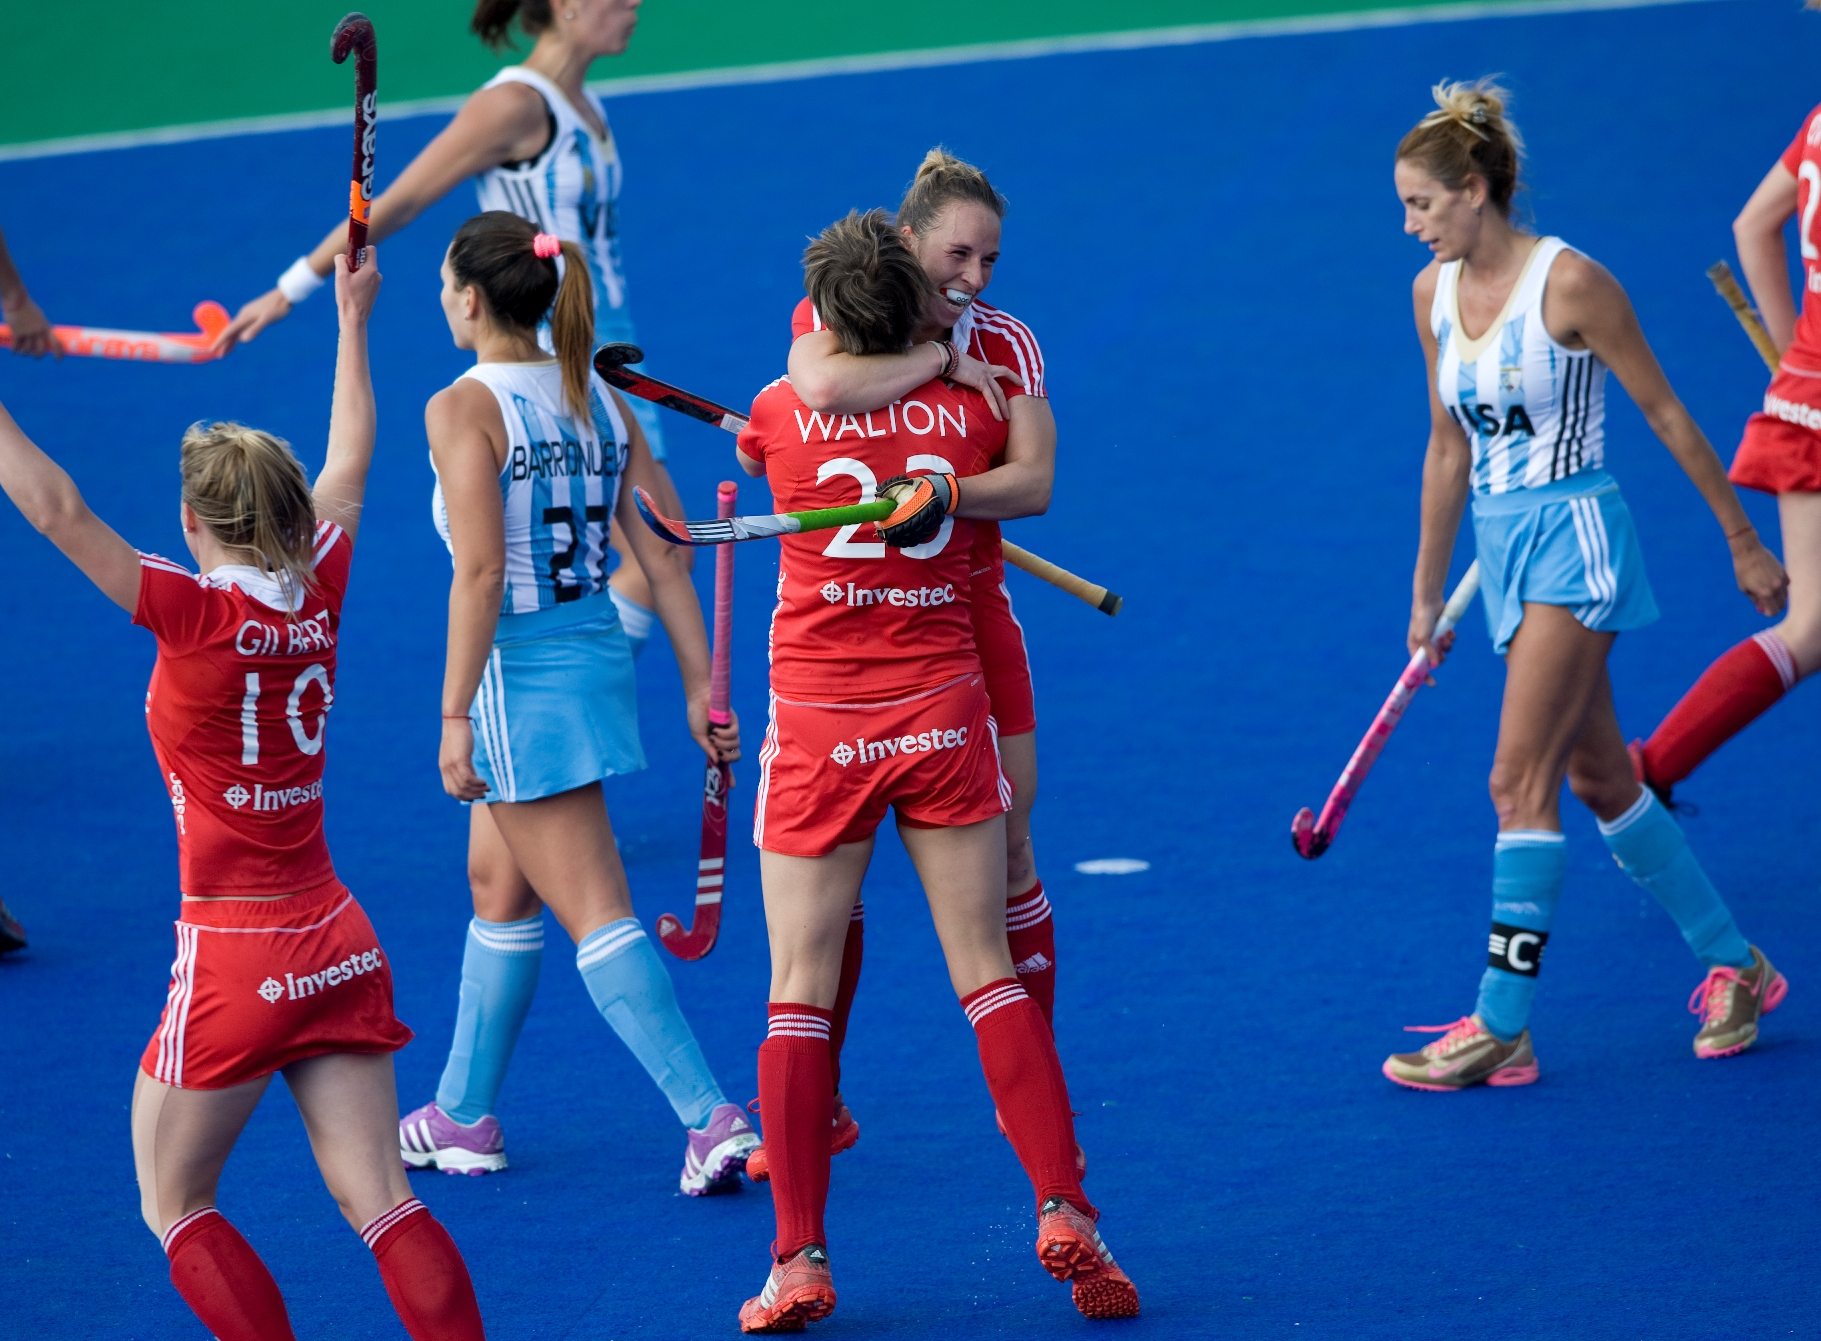 Susie Townsend celebrates as shemakes it 4-2 to England against Argentina at the Investec World League.jpg